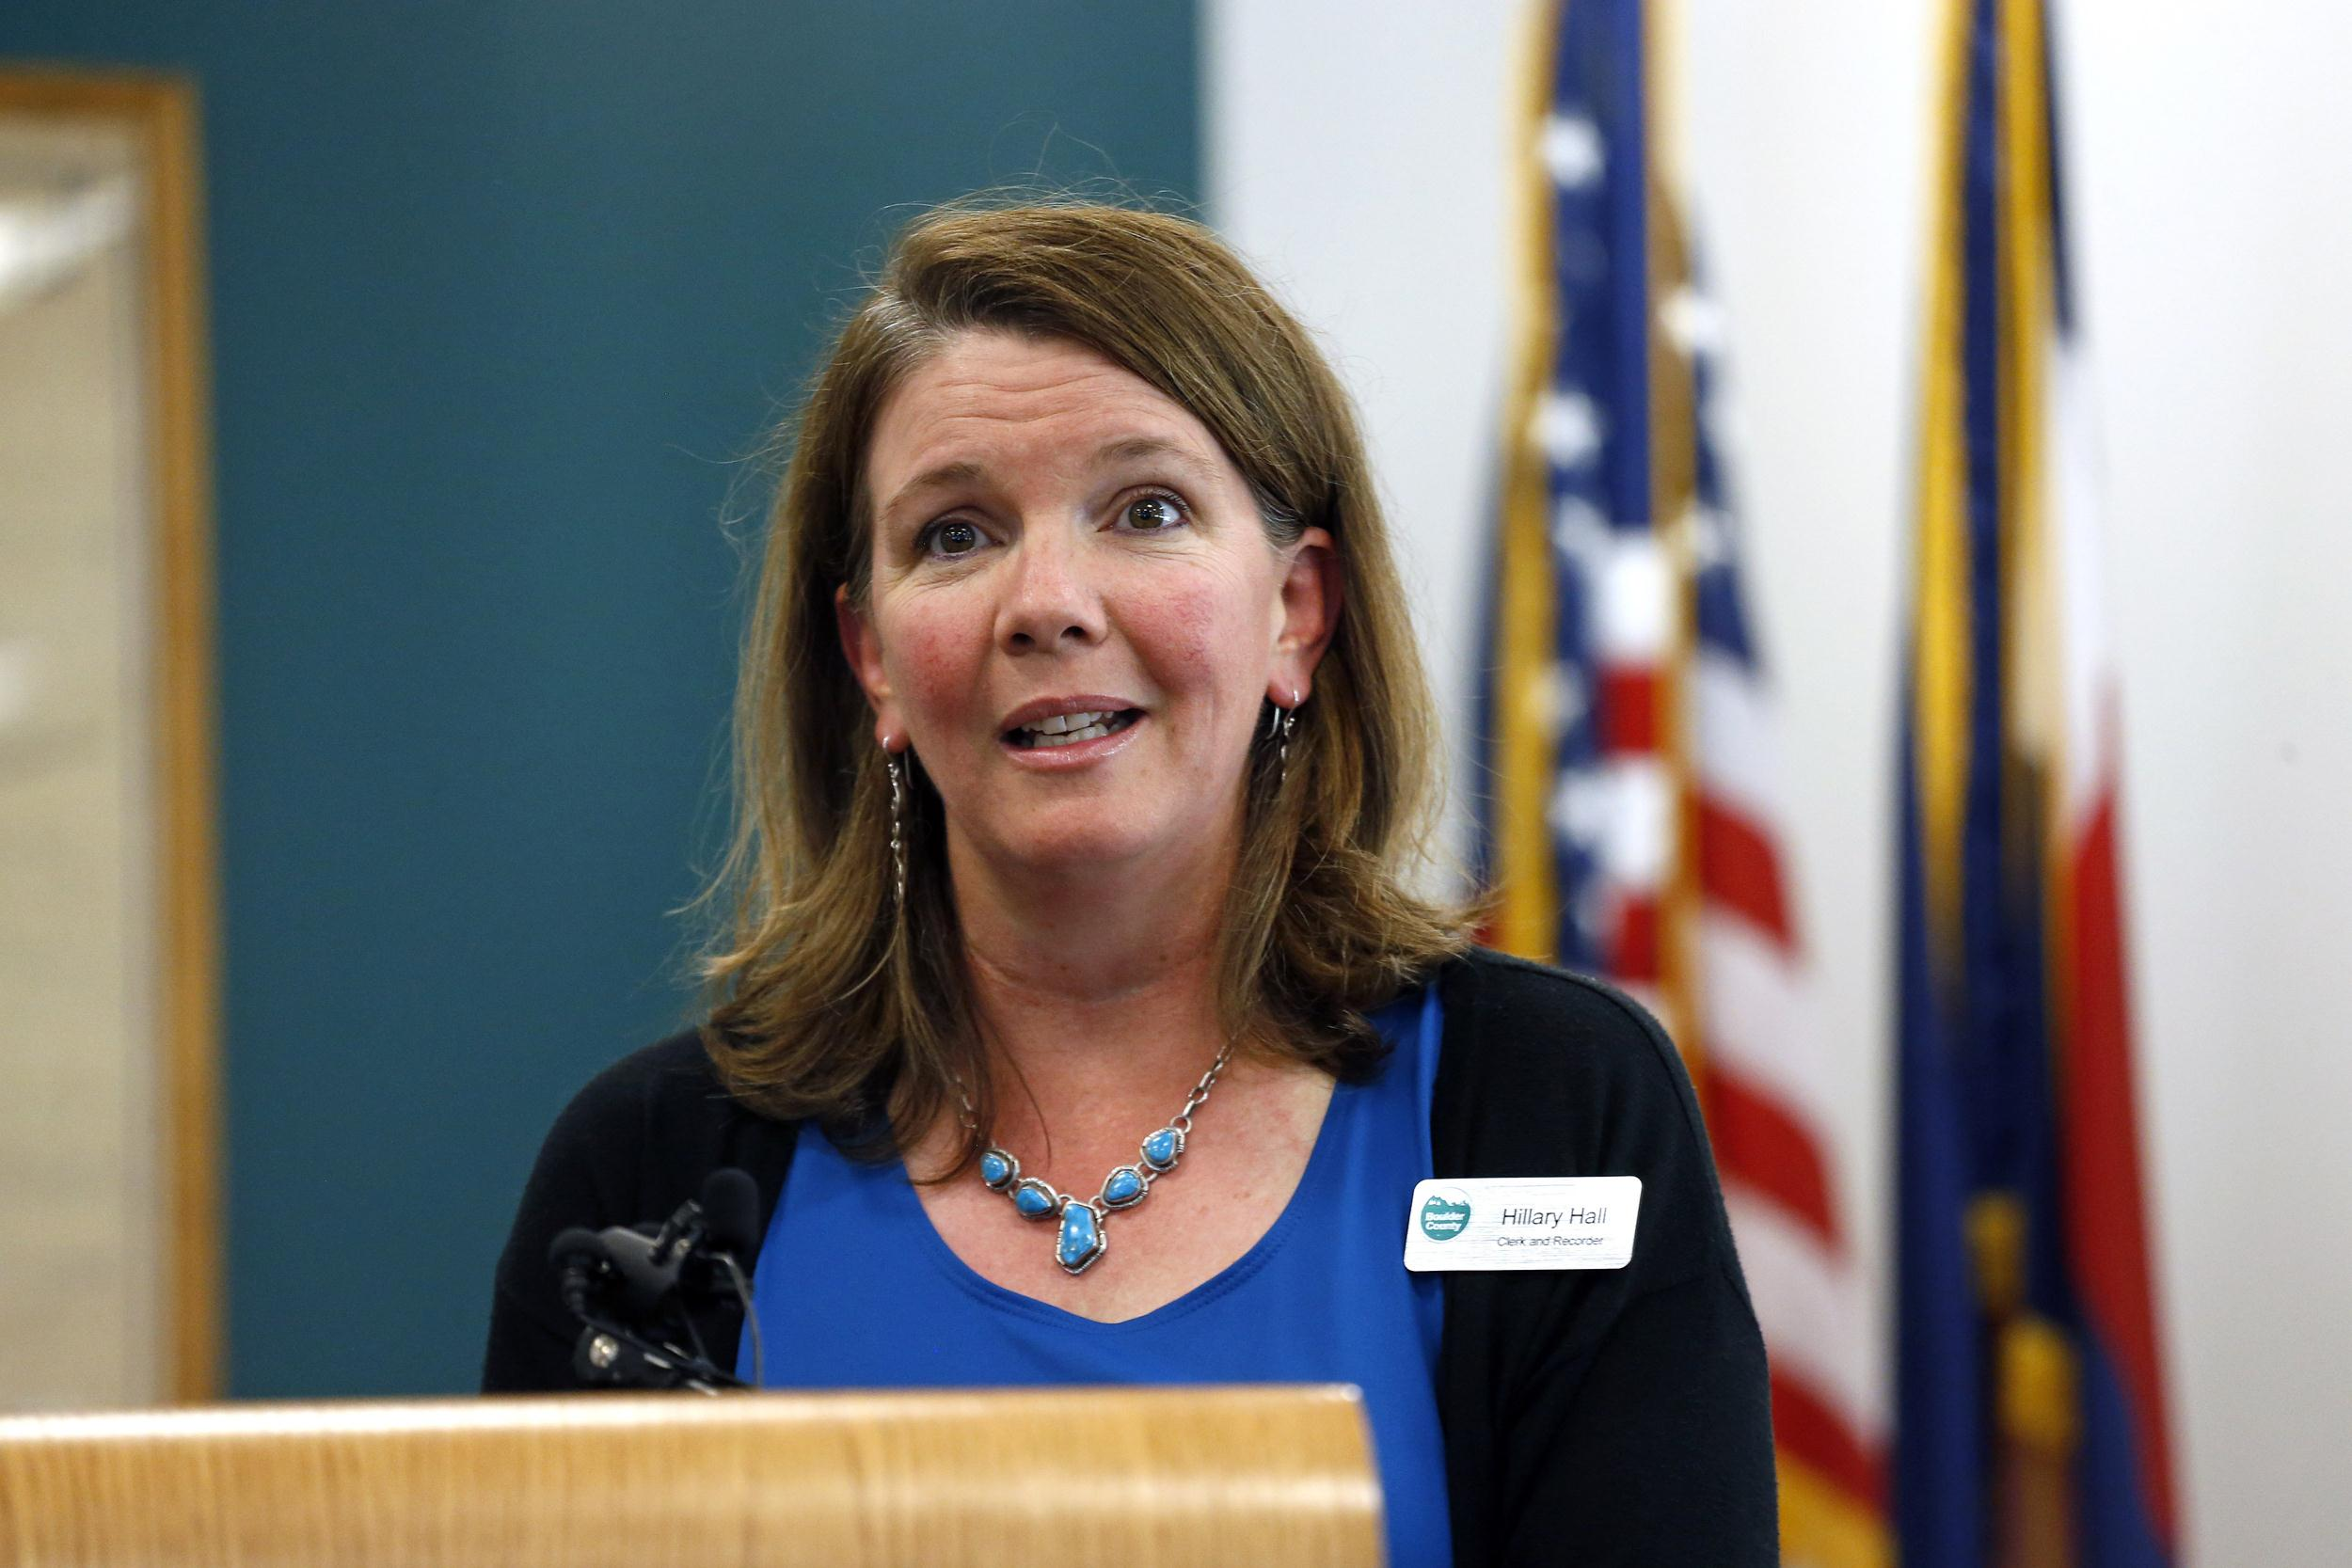 Image: Boulder County Clerk Hillary Hall